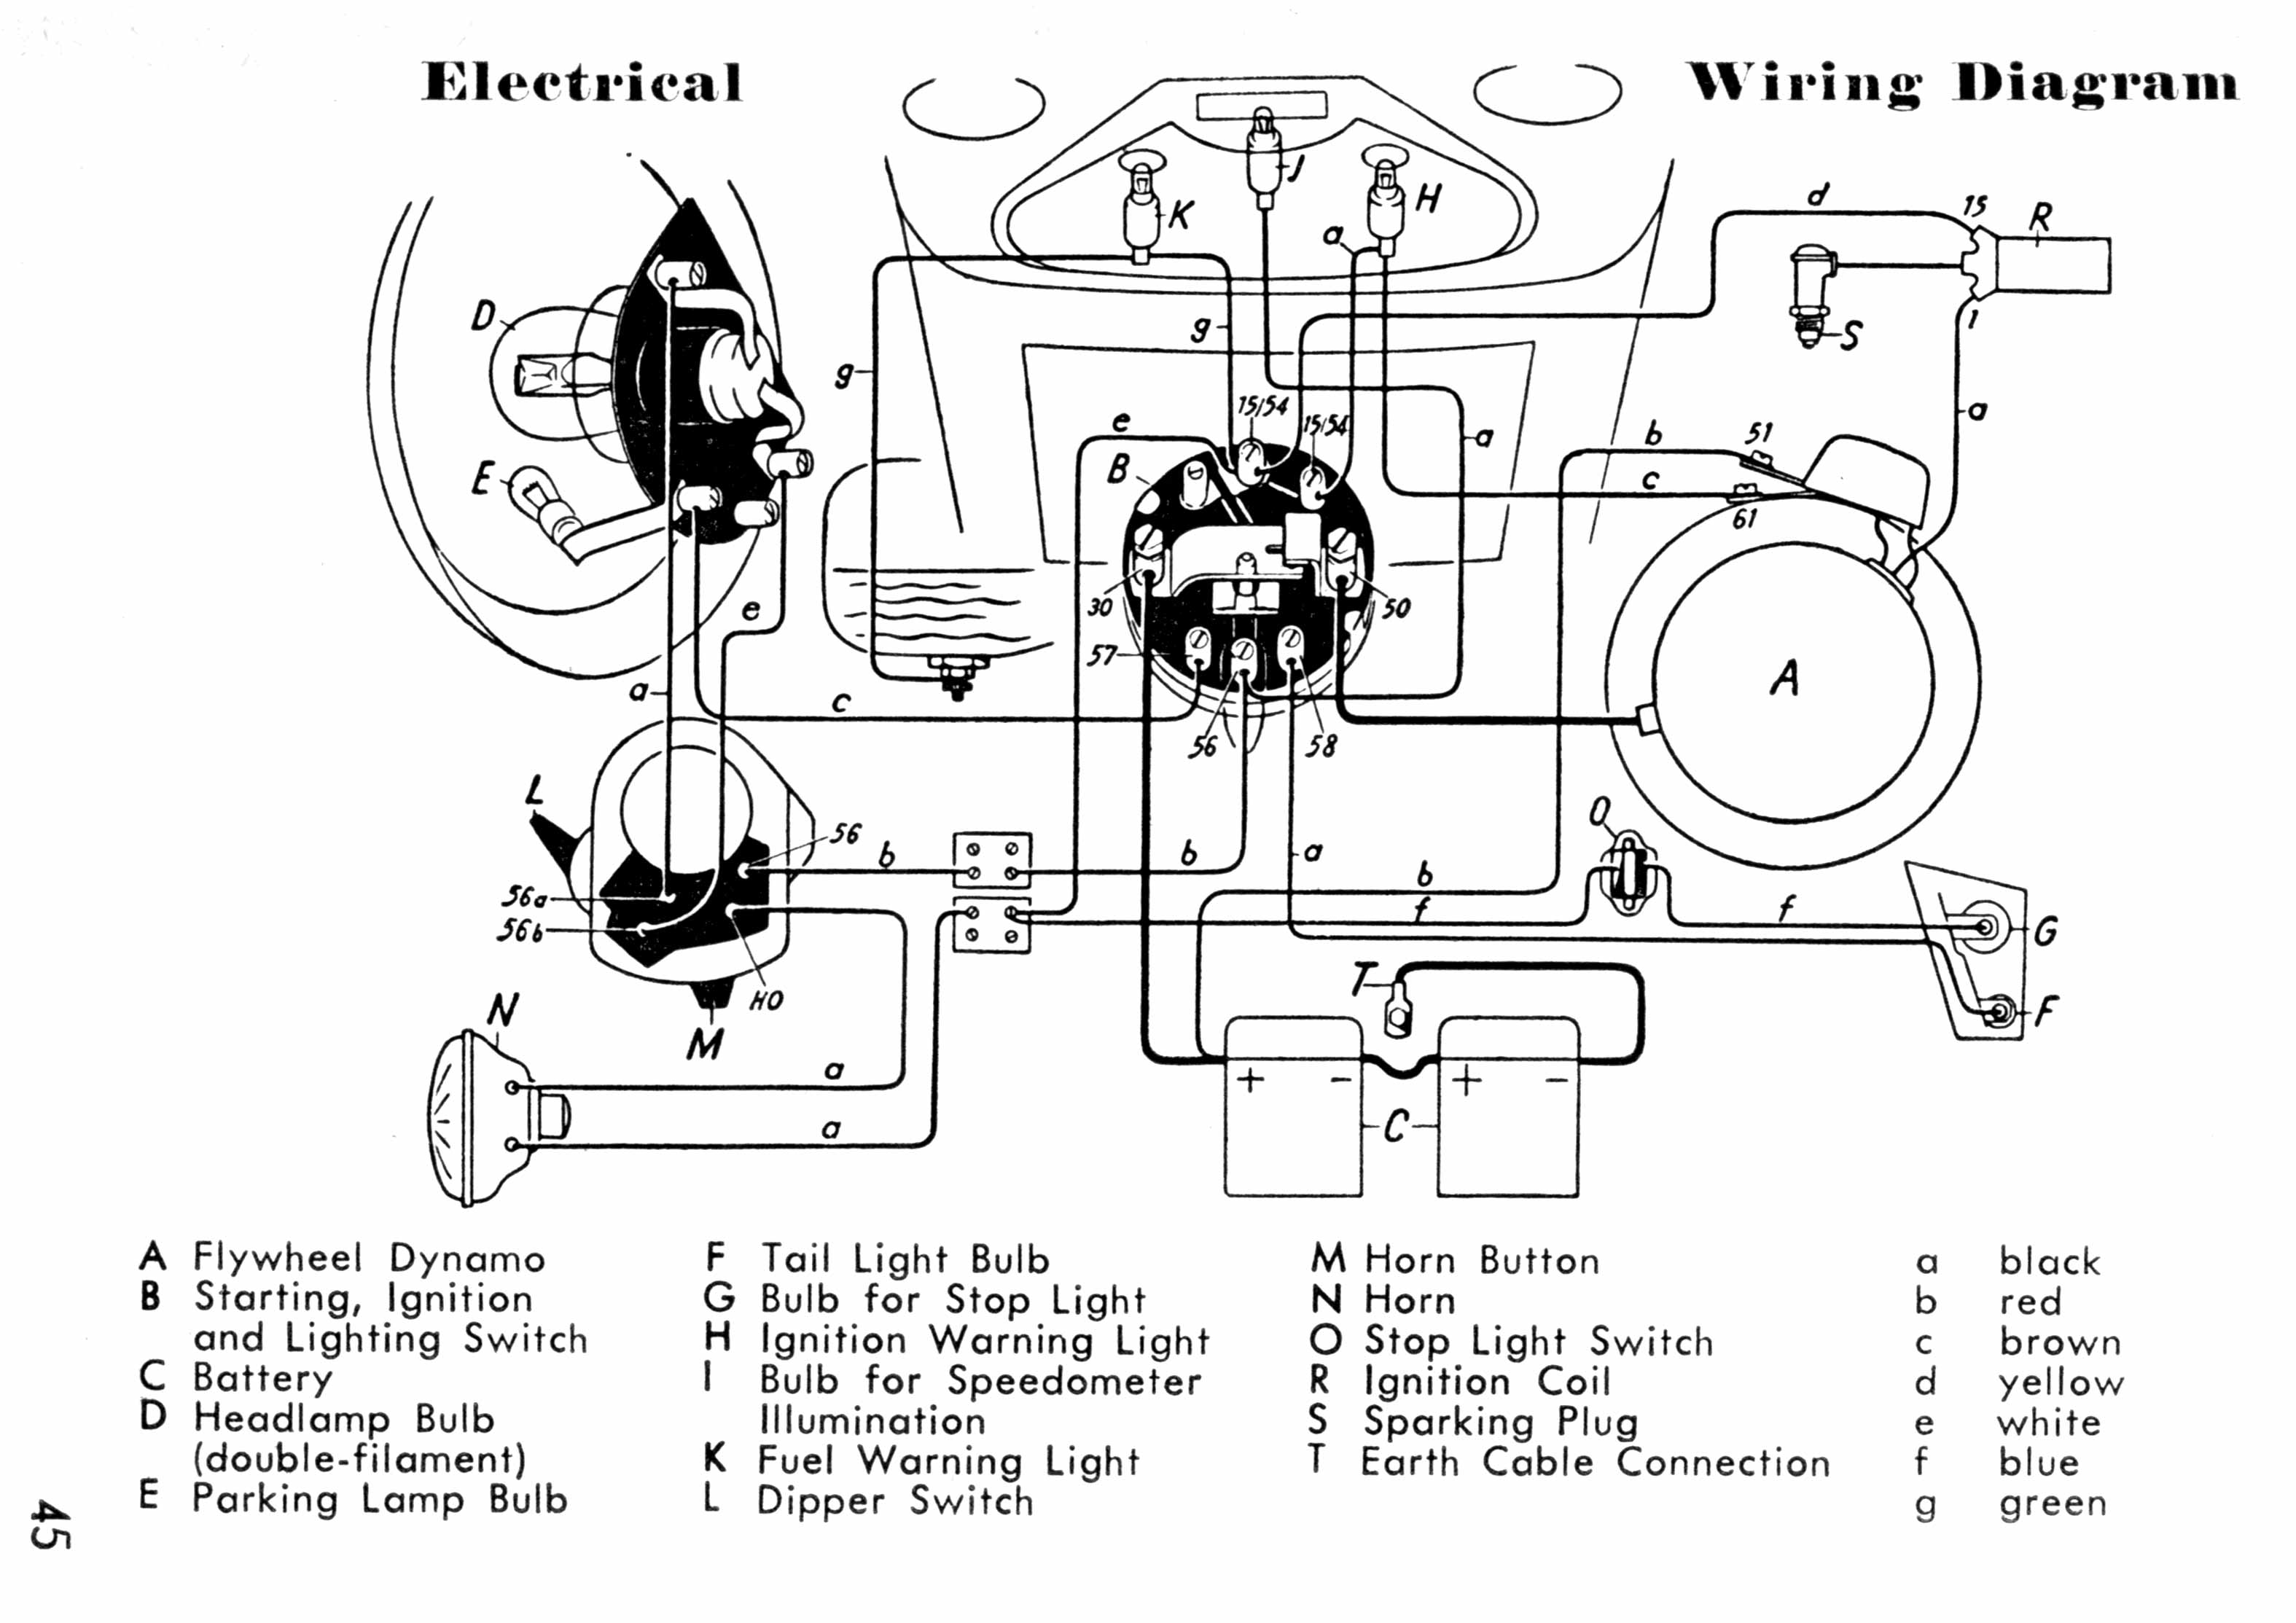 Dremel Wiring Diagram Electronic Diagrams Harley Rocker Detailed Schematics Atlas